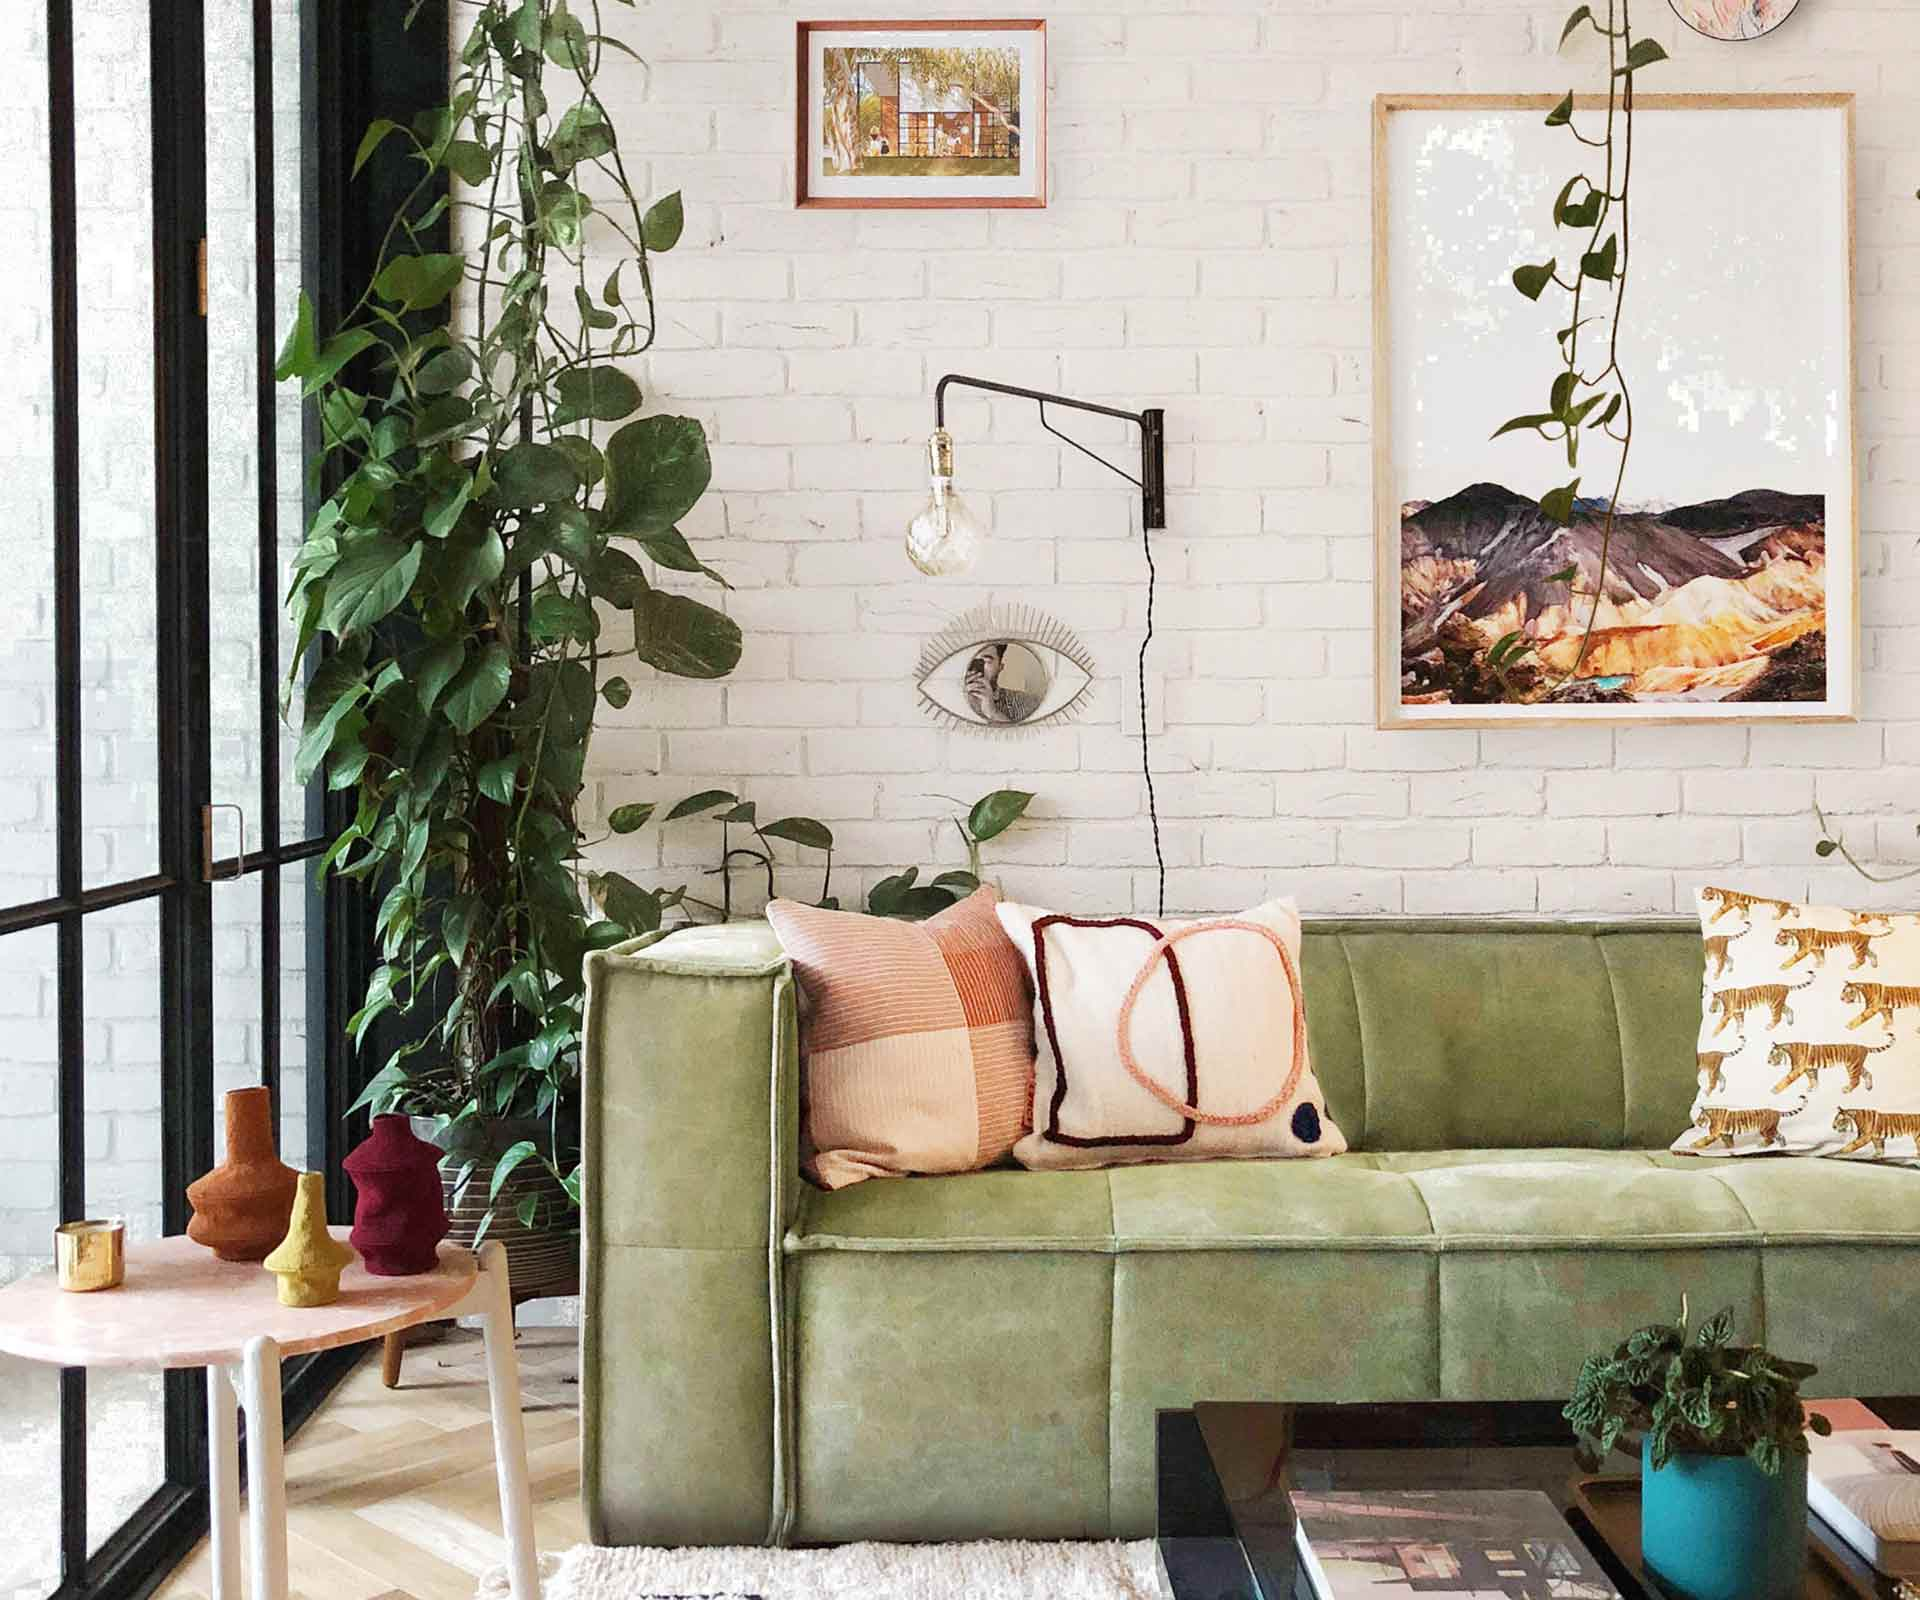 5 home trends to invest in for 2019